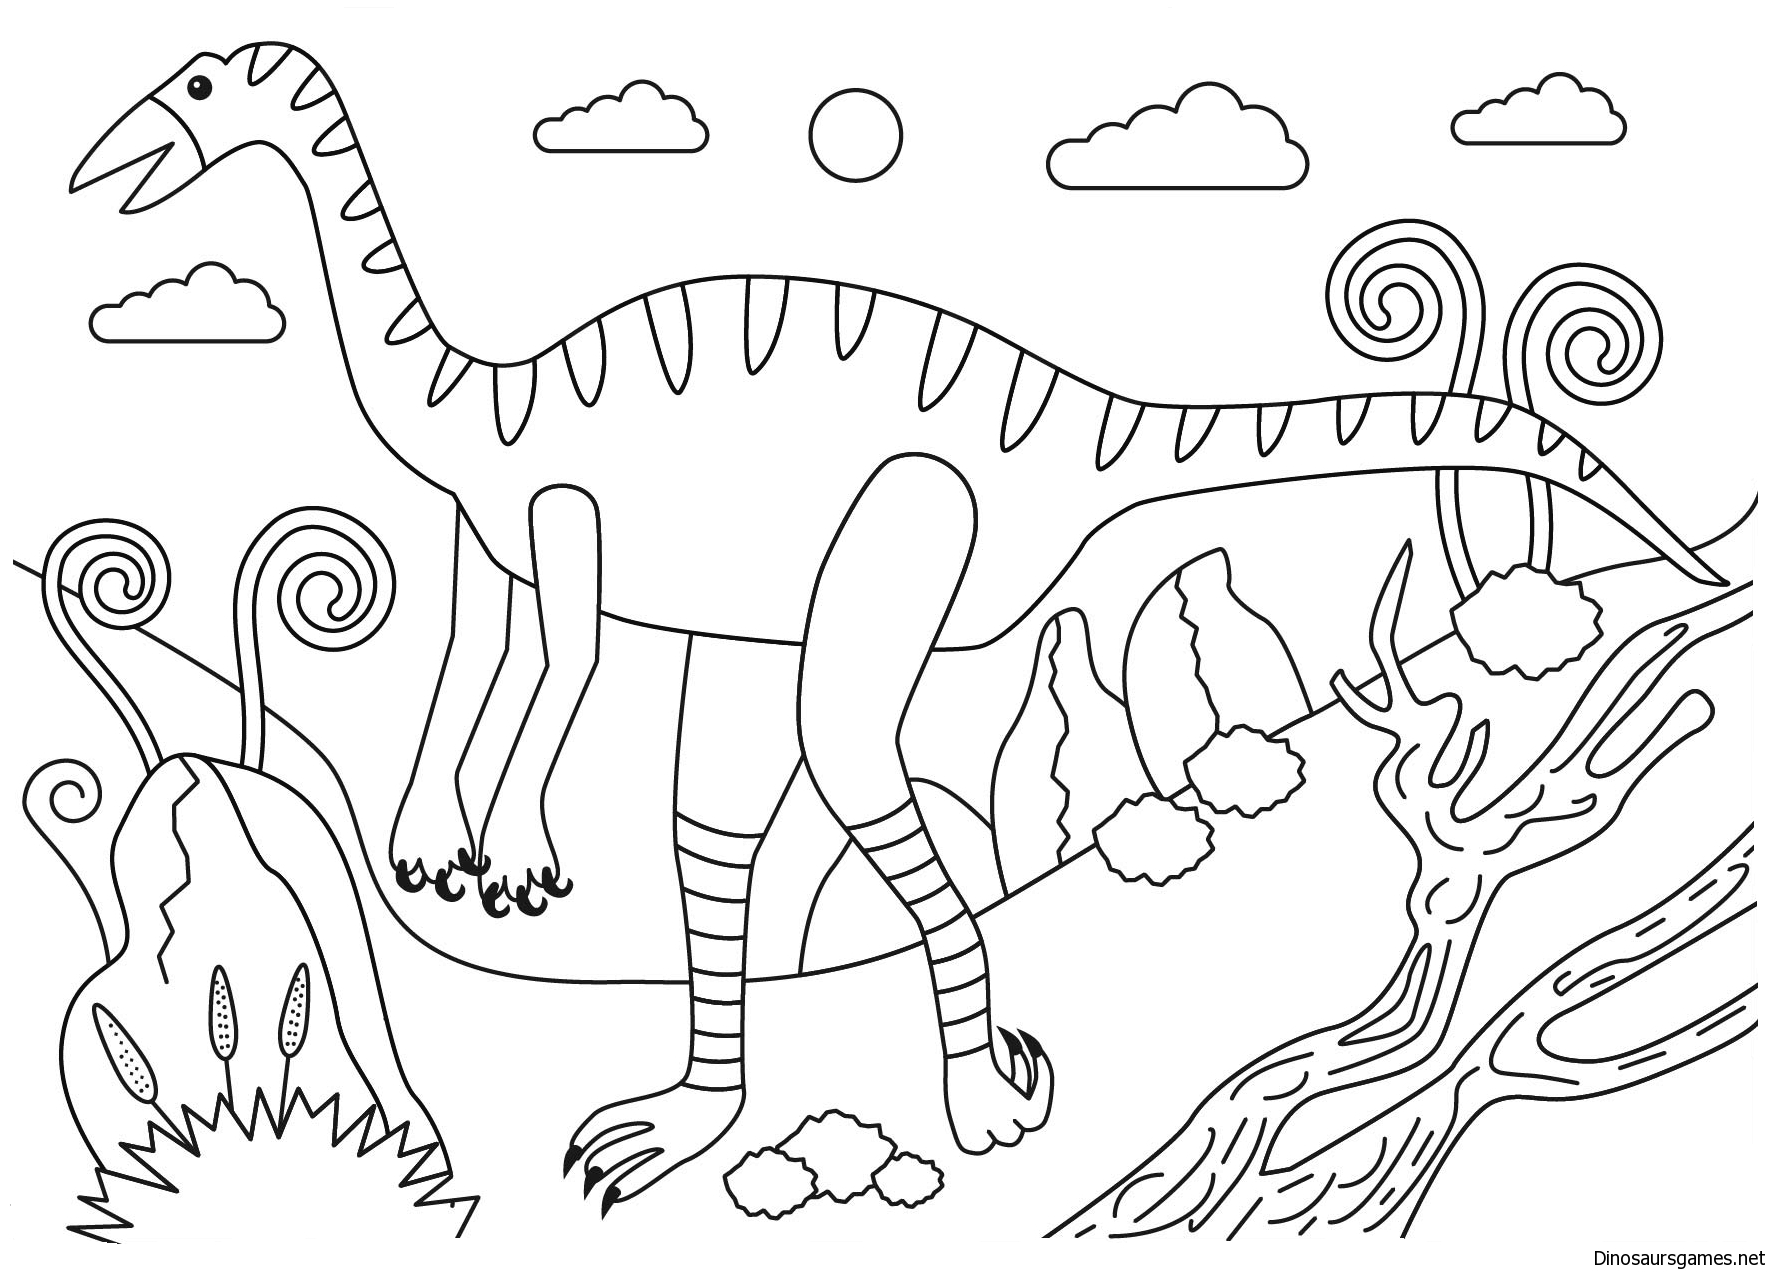 jpg royalty free download . Struthiomimus dinosaur coloring page